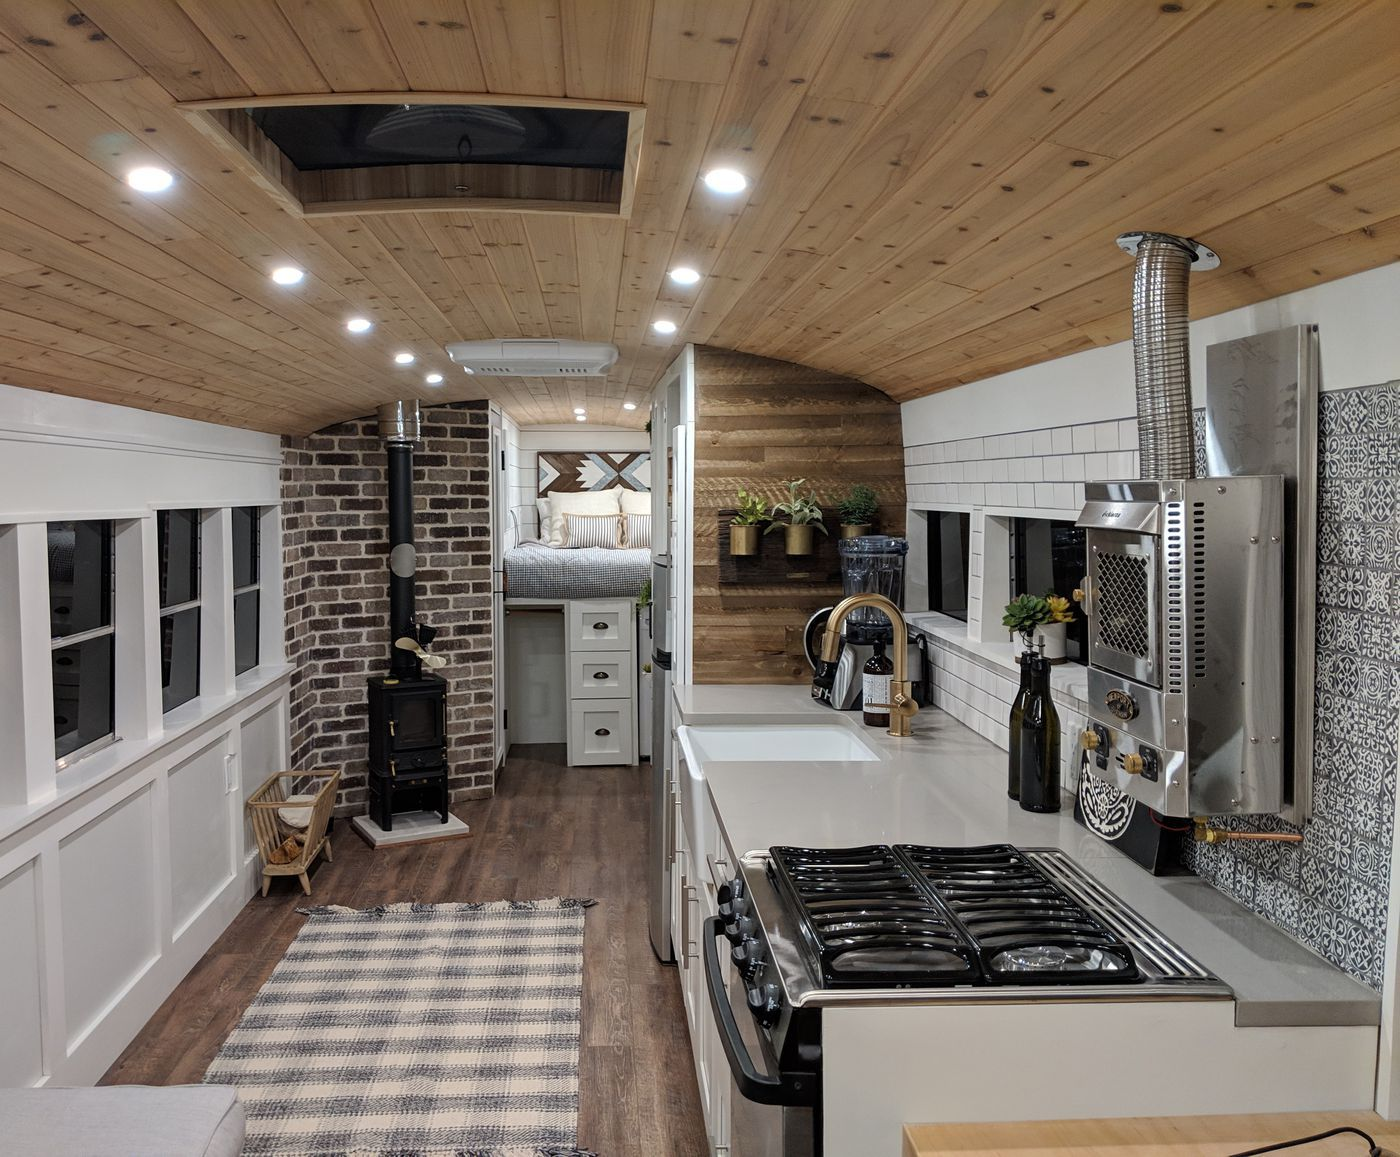 Converted School Bus Is A Cozy Tiny Home On Wheels